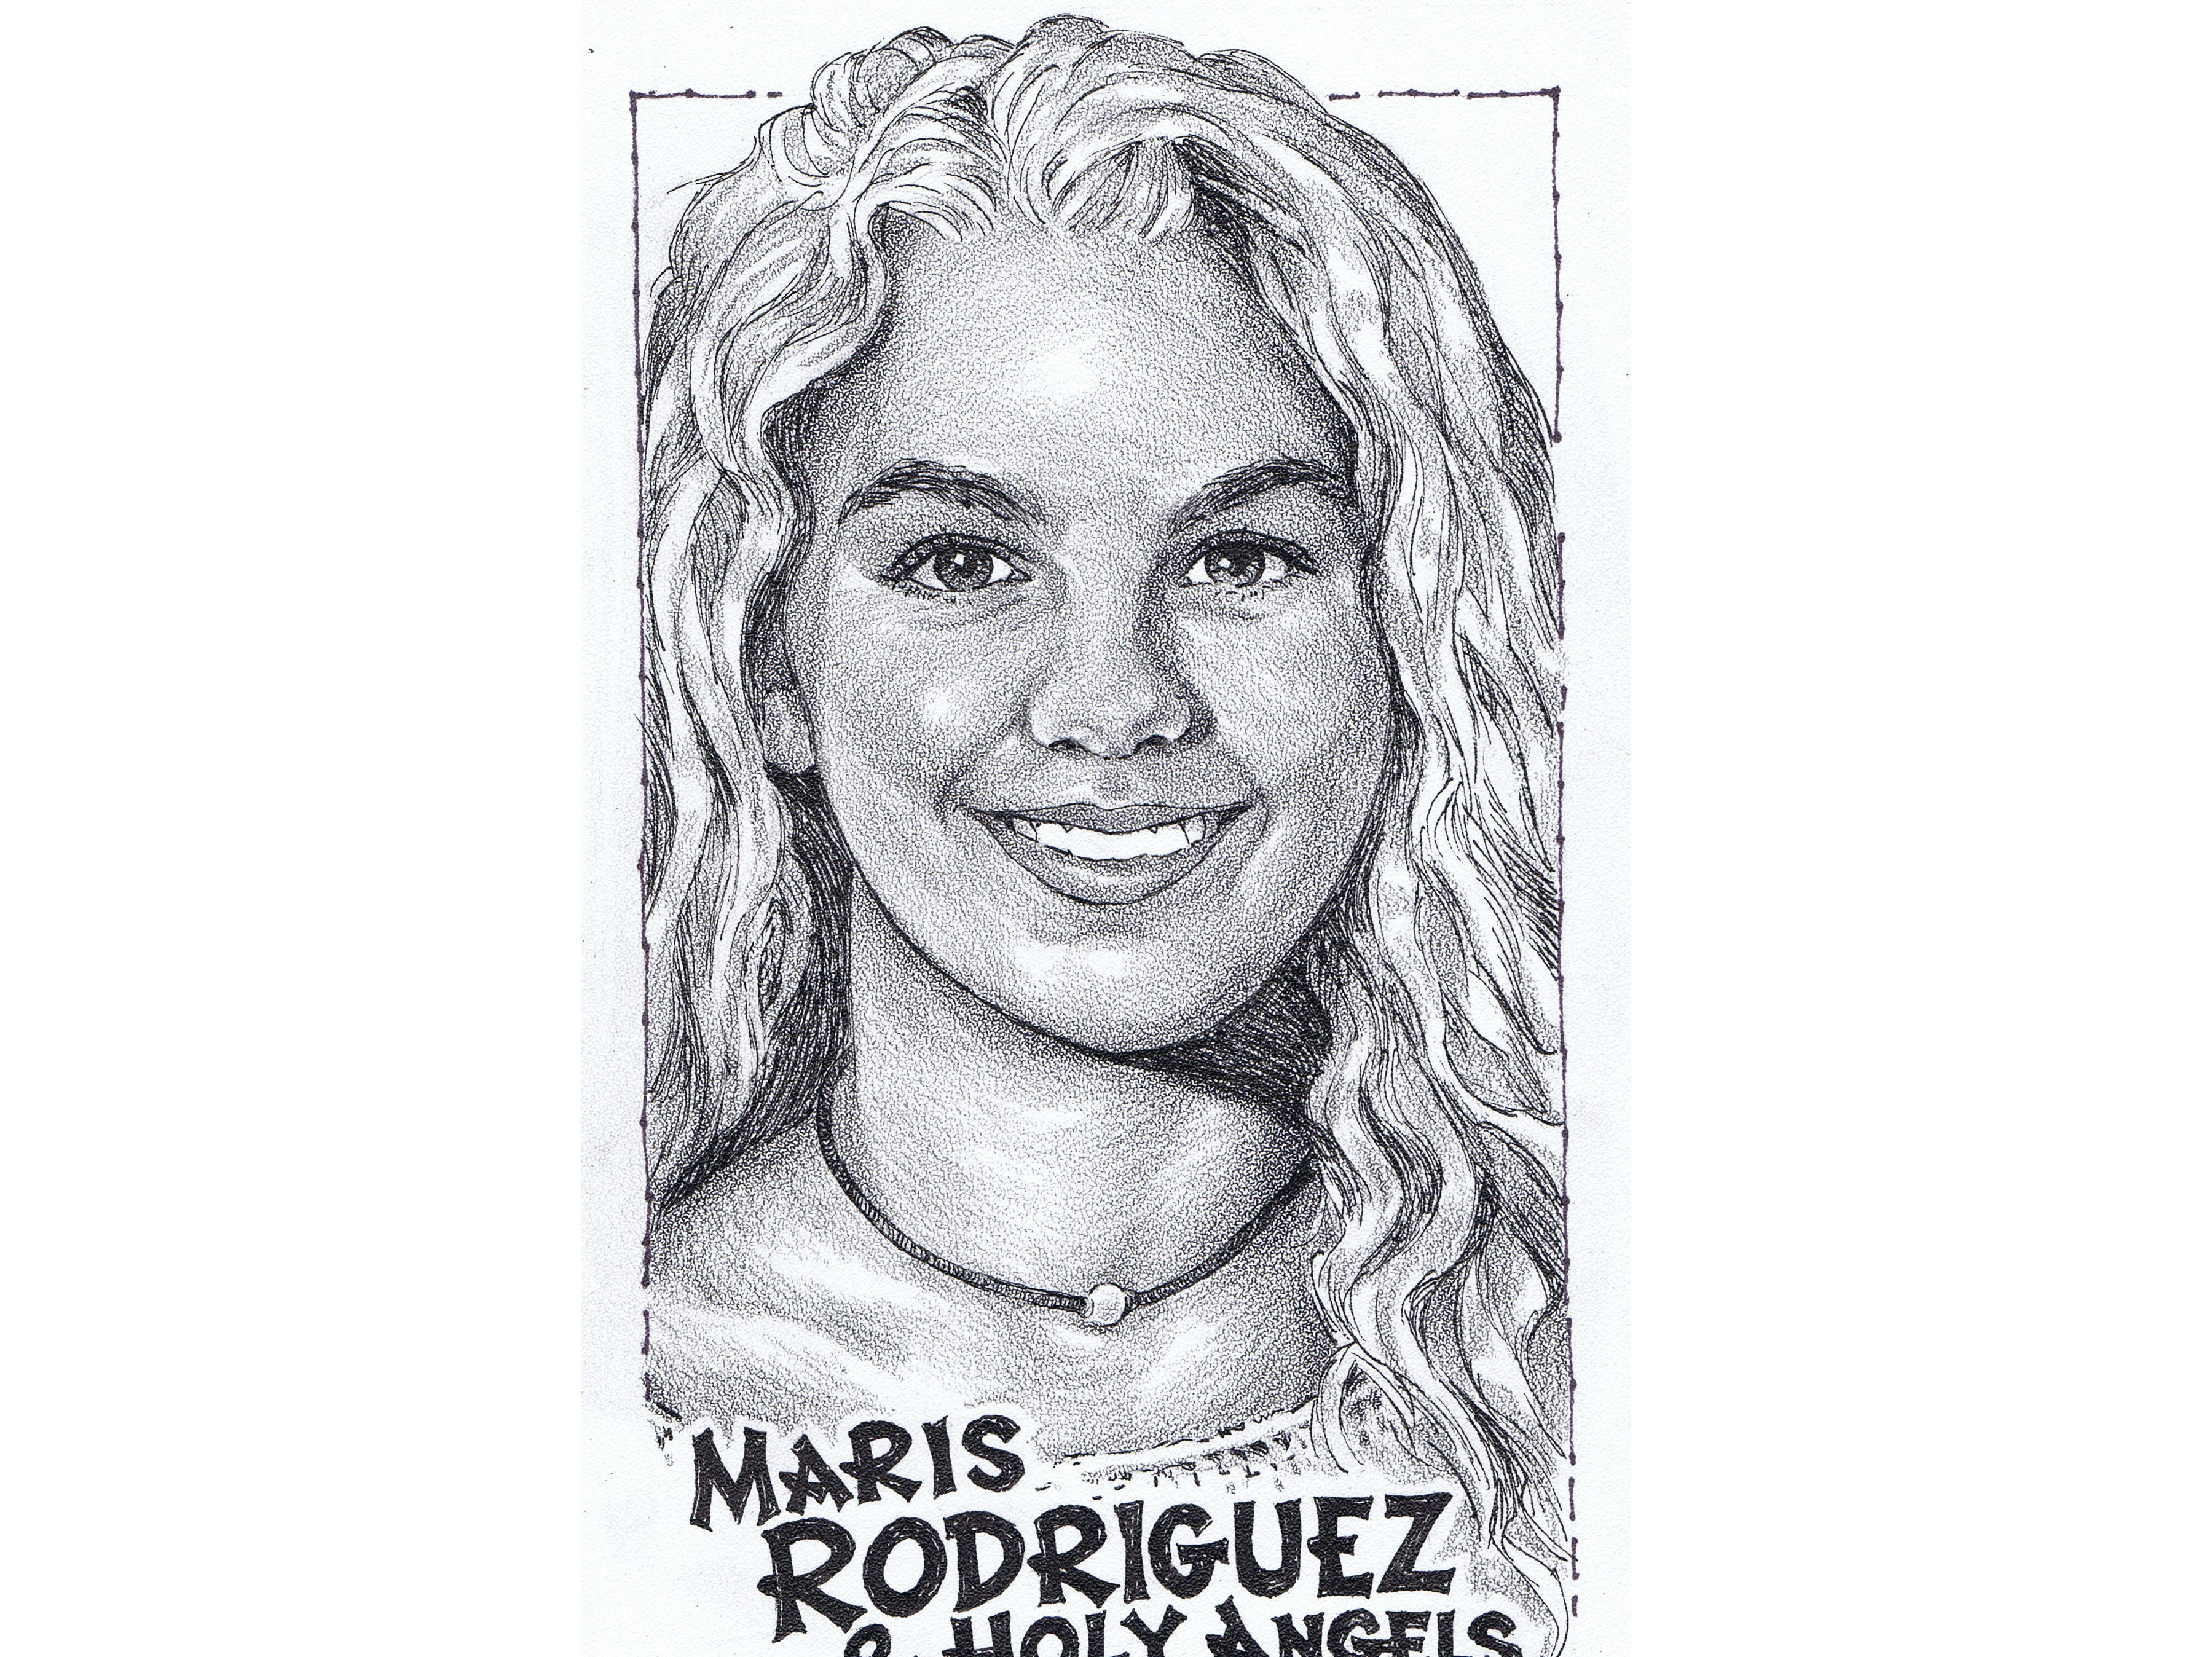 Maris Rodriguez, Holy Angels track and field